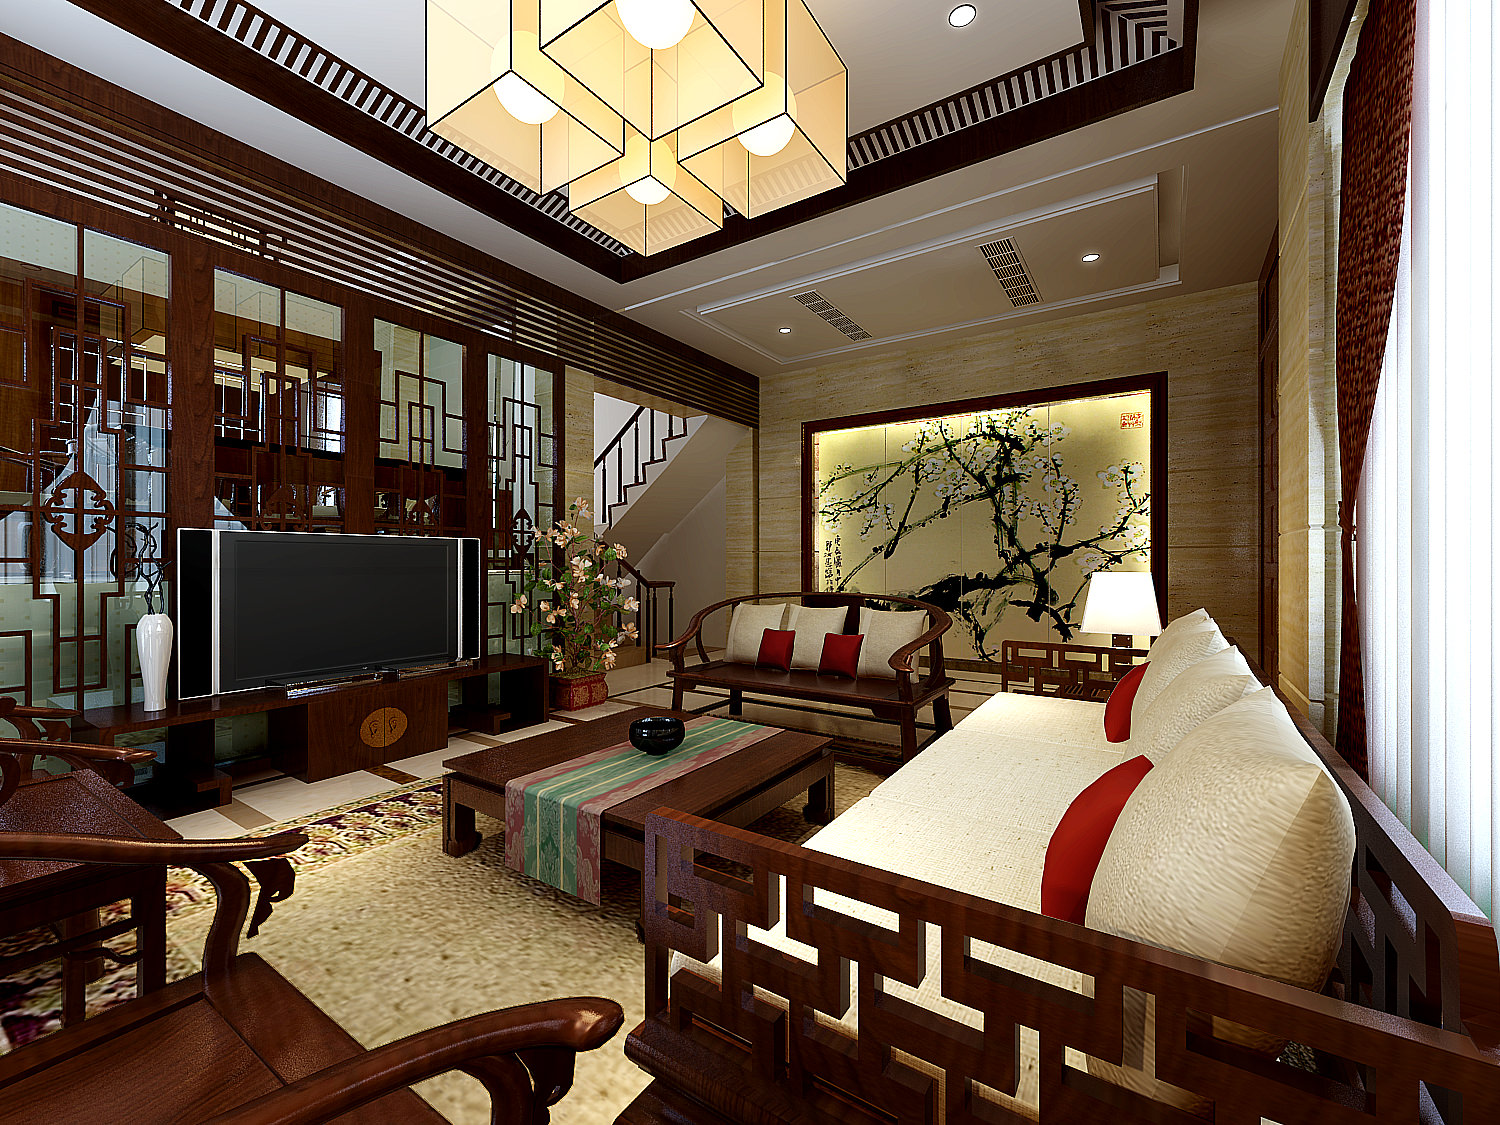 Modern living room with dining room upstairs 3d model max for Living room upstairs